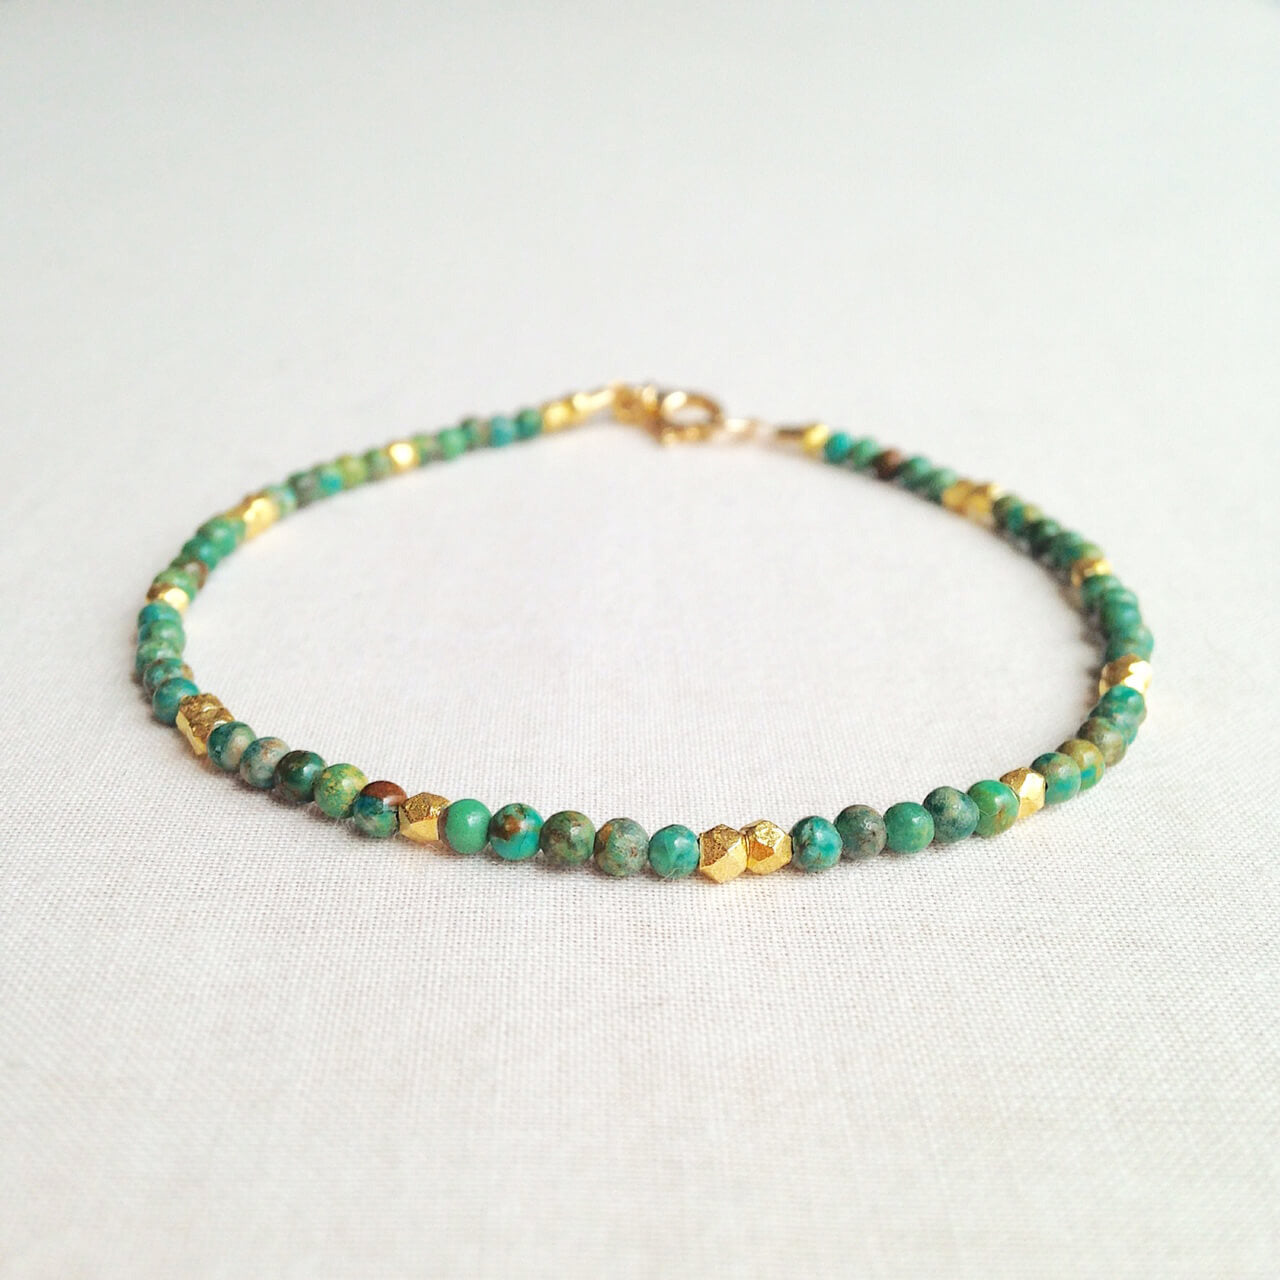 This beaded turquoise bracelet exudes a timeless look that would be fit for a queen.  The dainty turquoise bracelet is made of hand-selected blue turquoise beads and 24k gold plated beads.